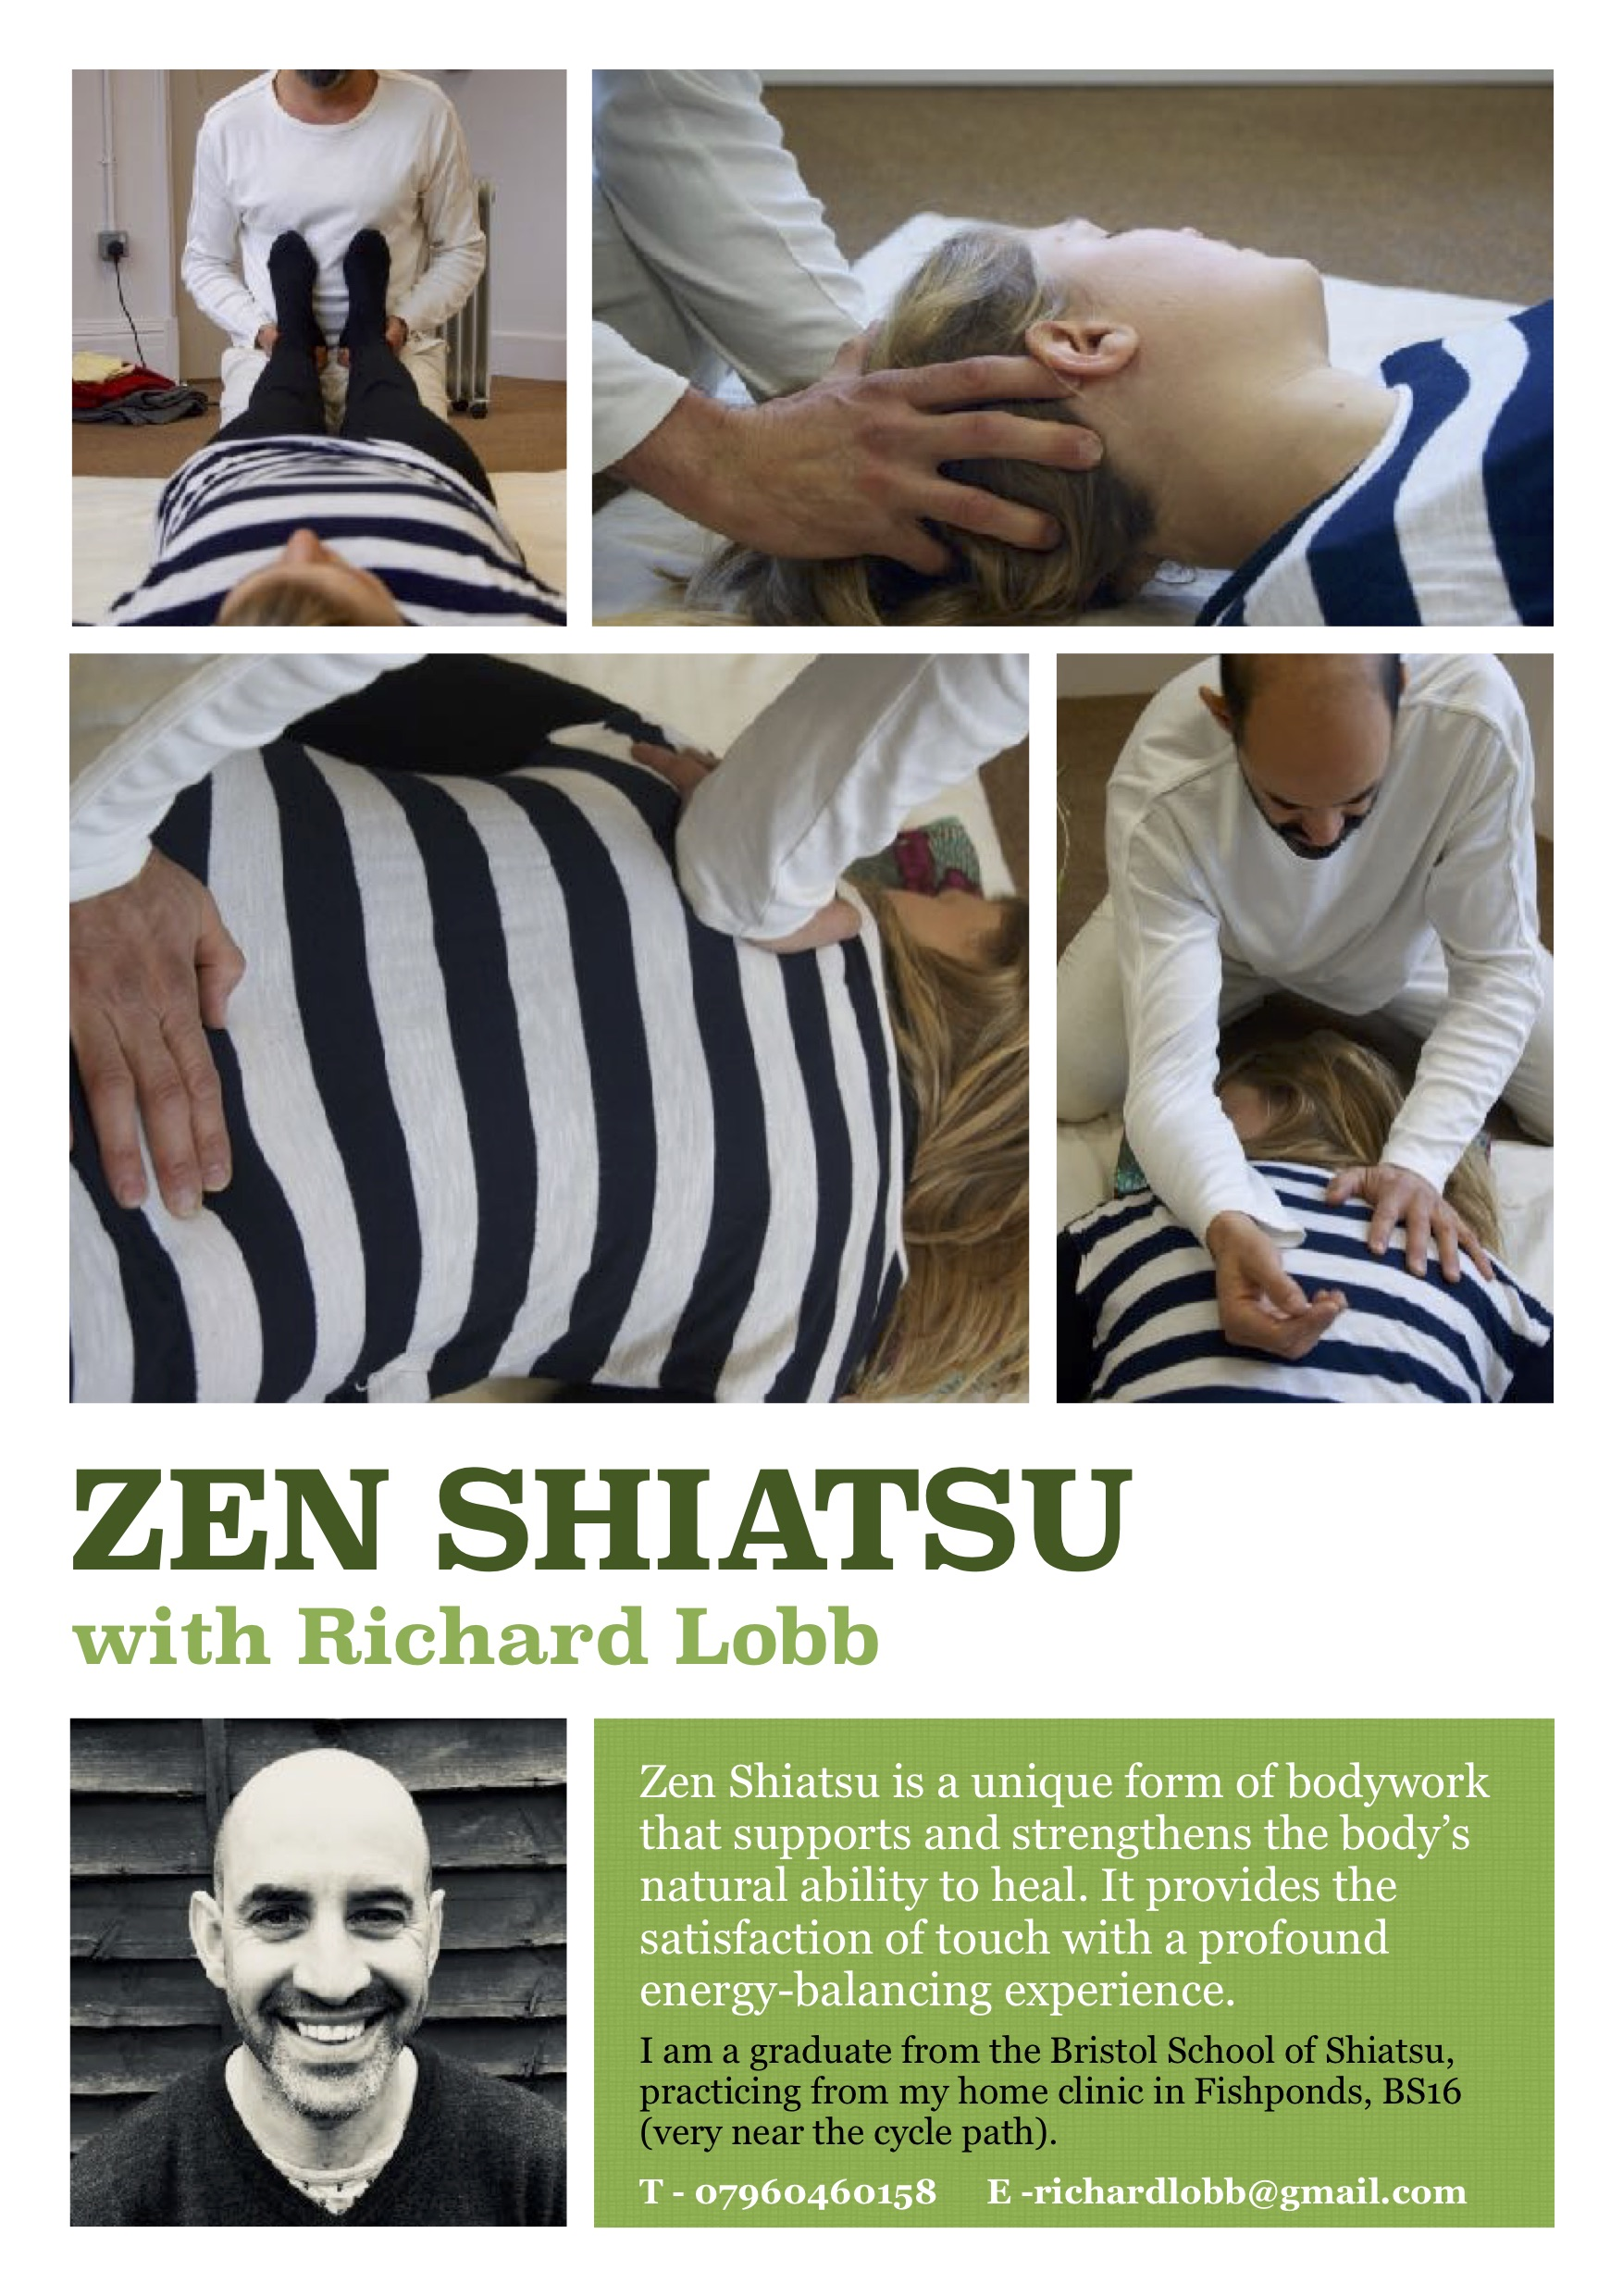 RICHARD LOBB SHIATSU FLYER.jpg